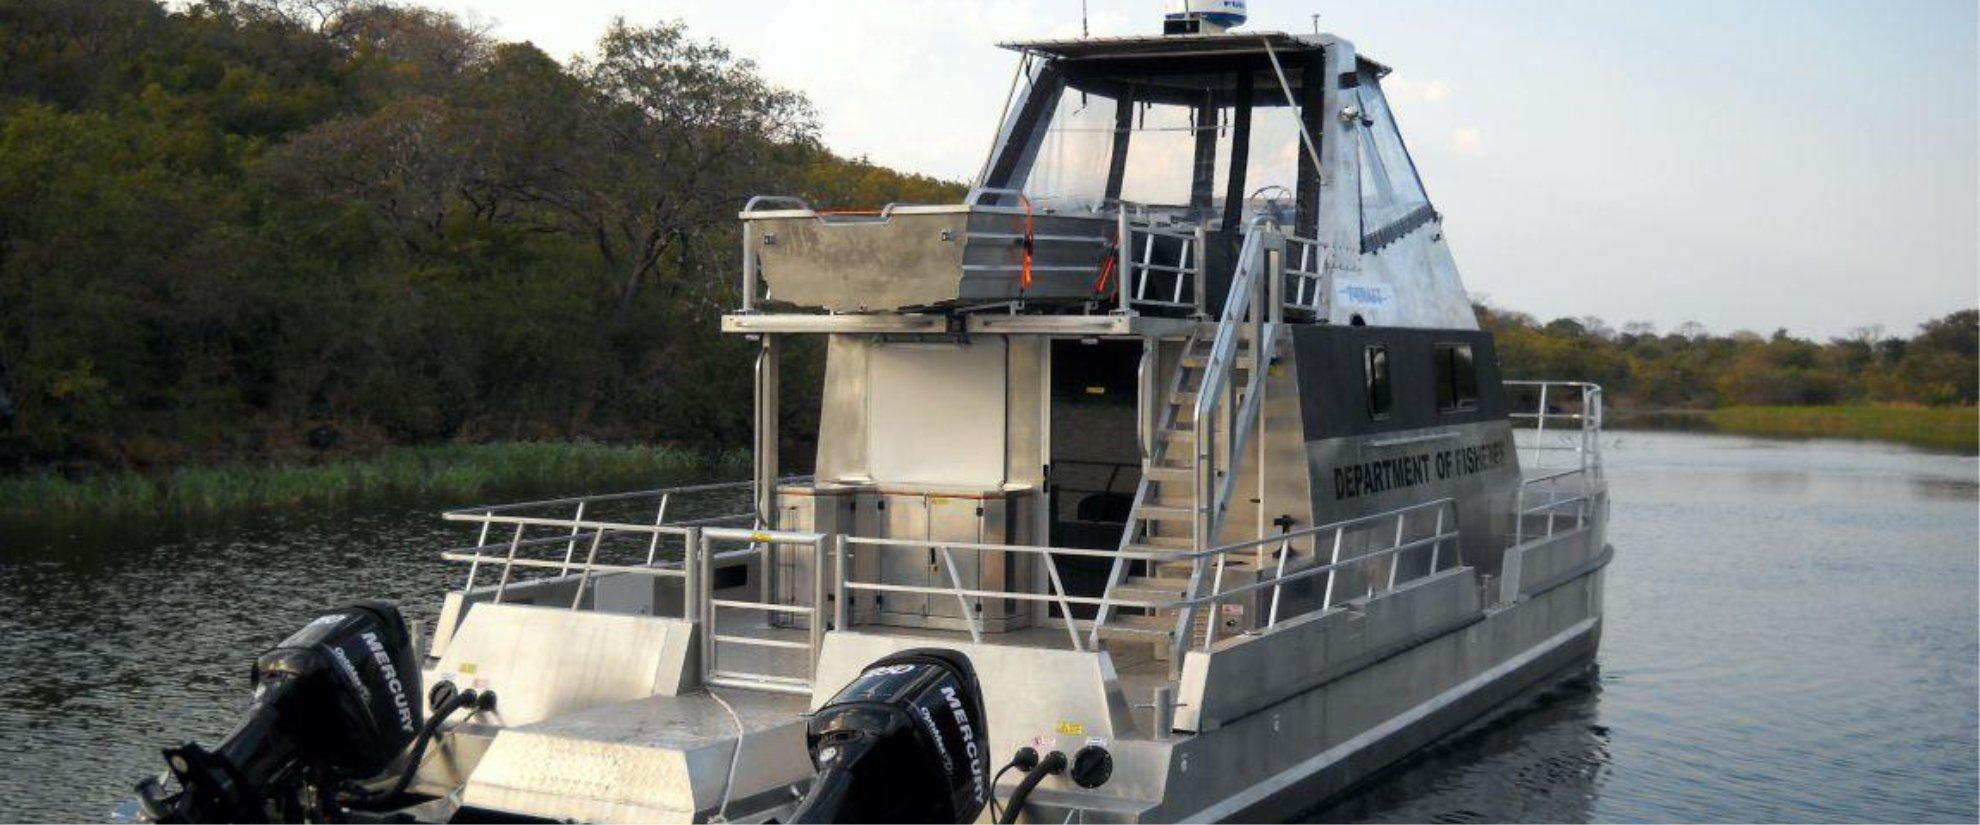 14.5m Research Workboat